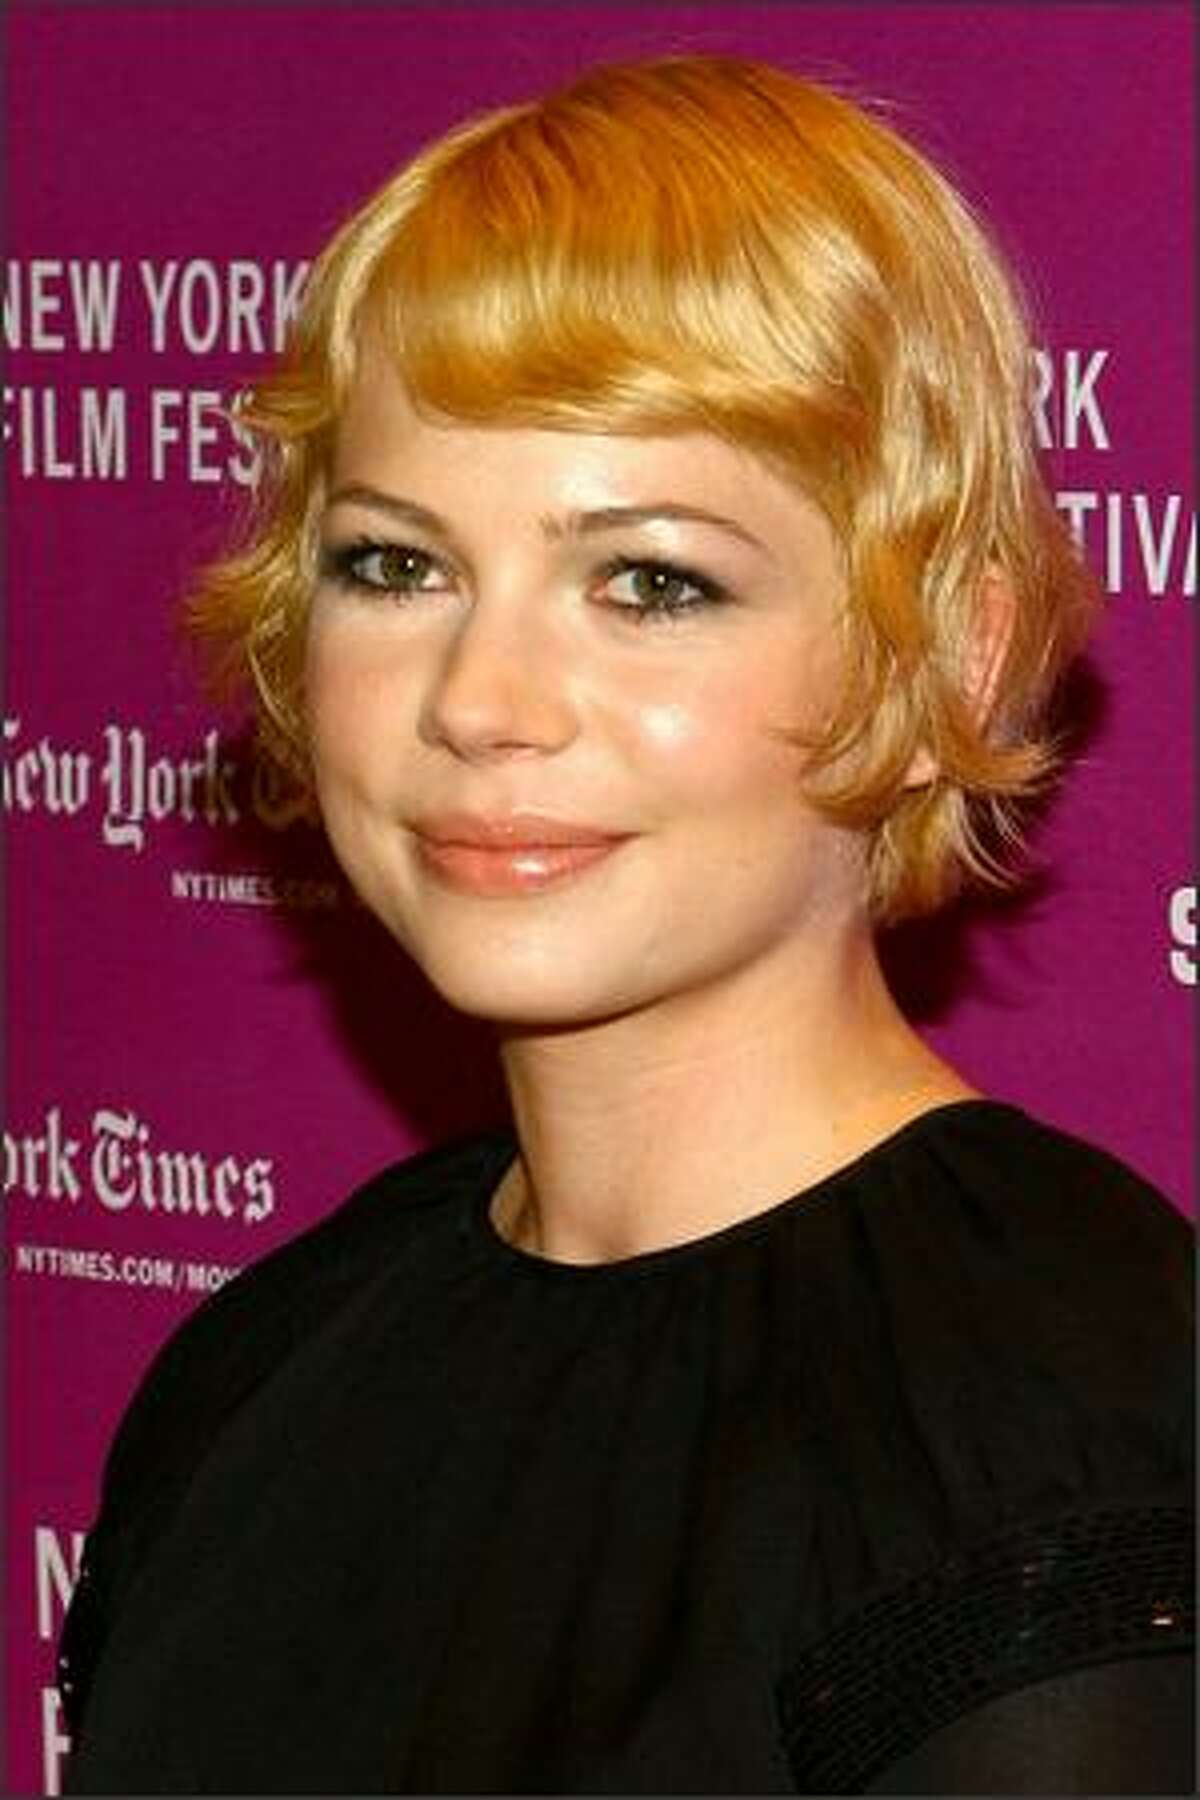 Actress Michelle Williams attends the New York Film Festival screening of